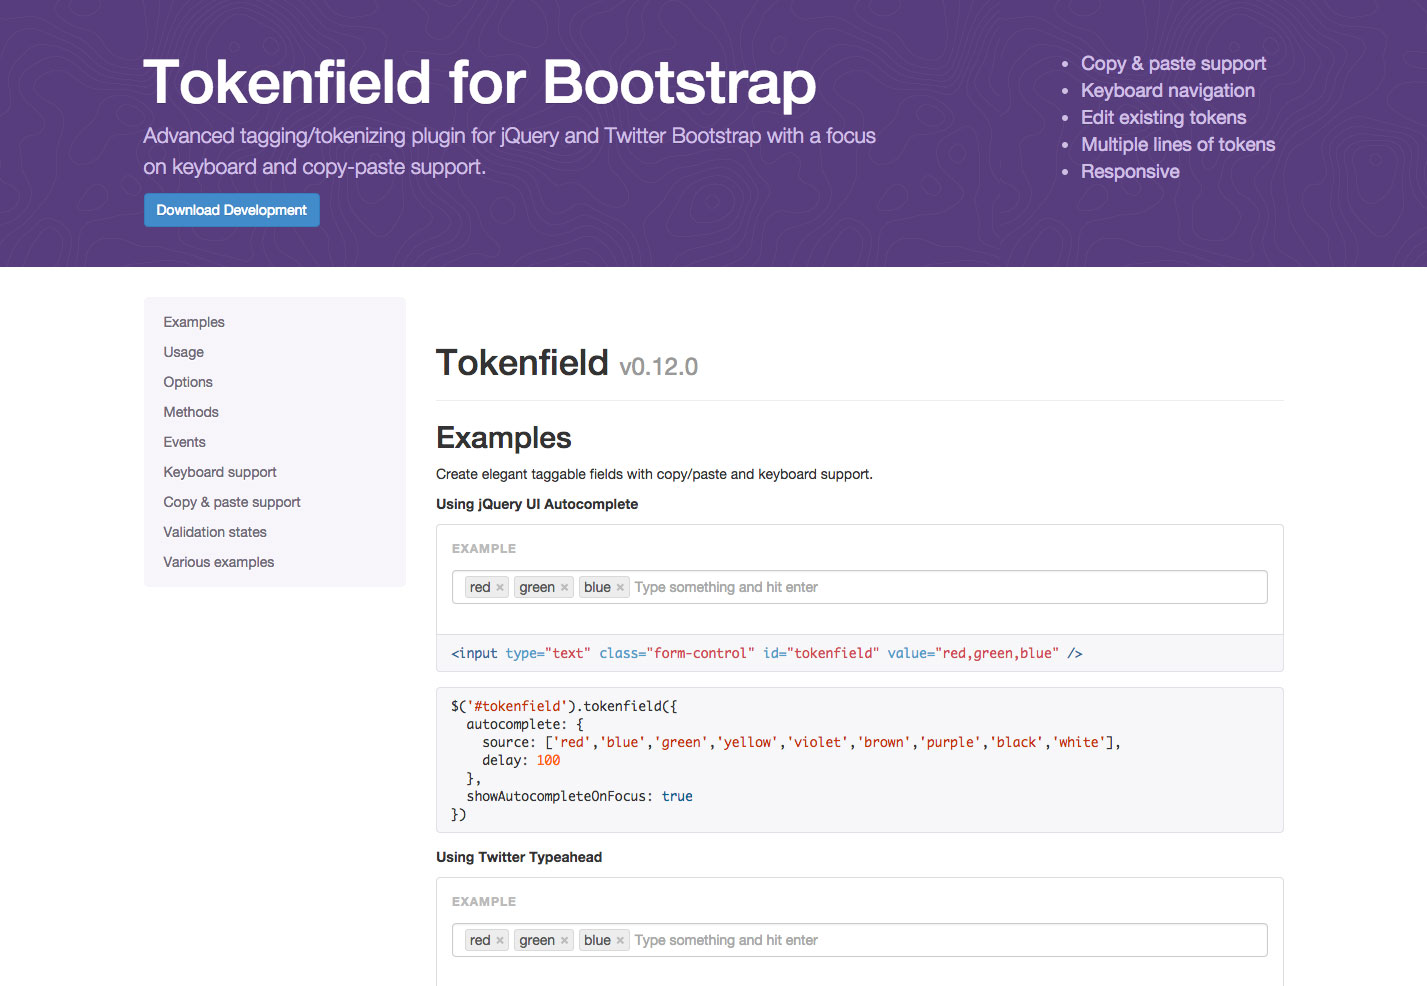 tokenfield